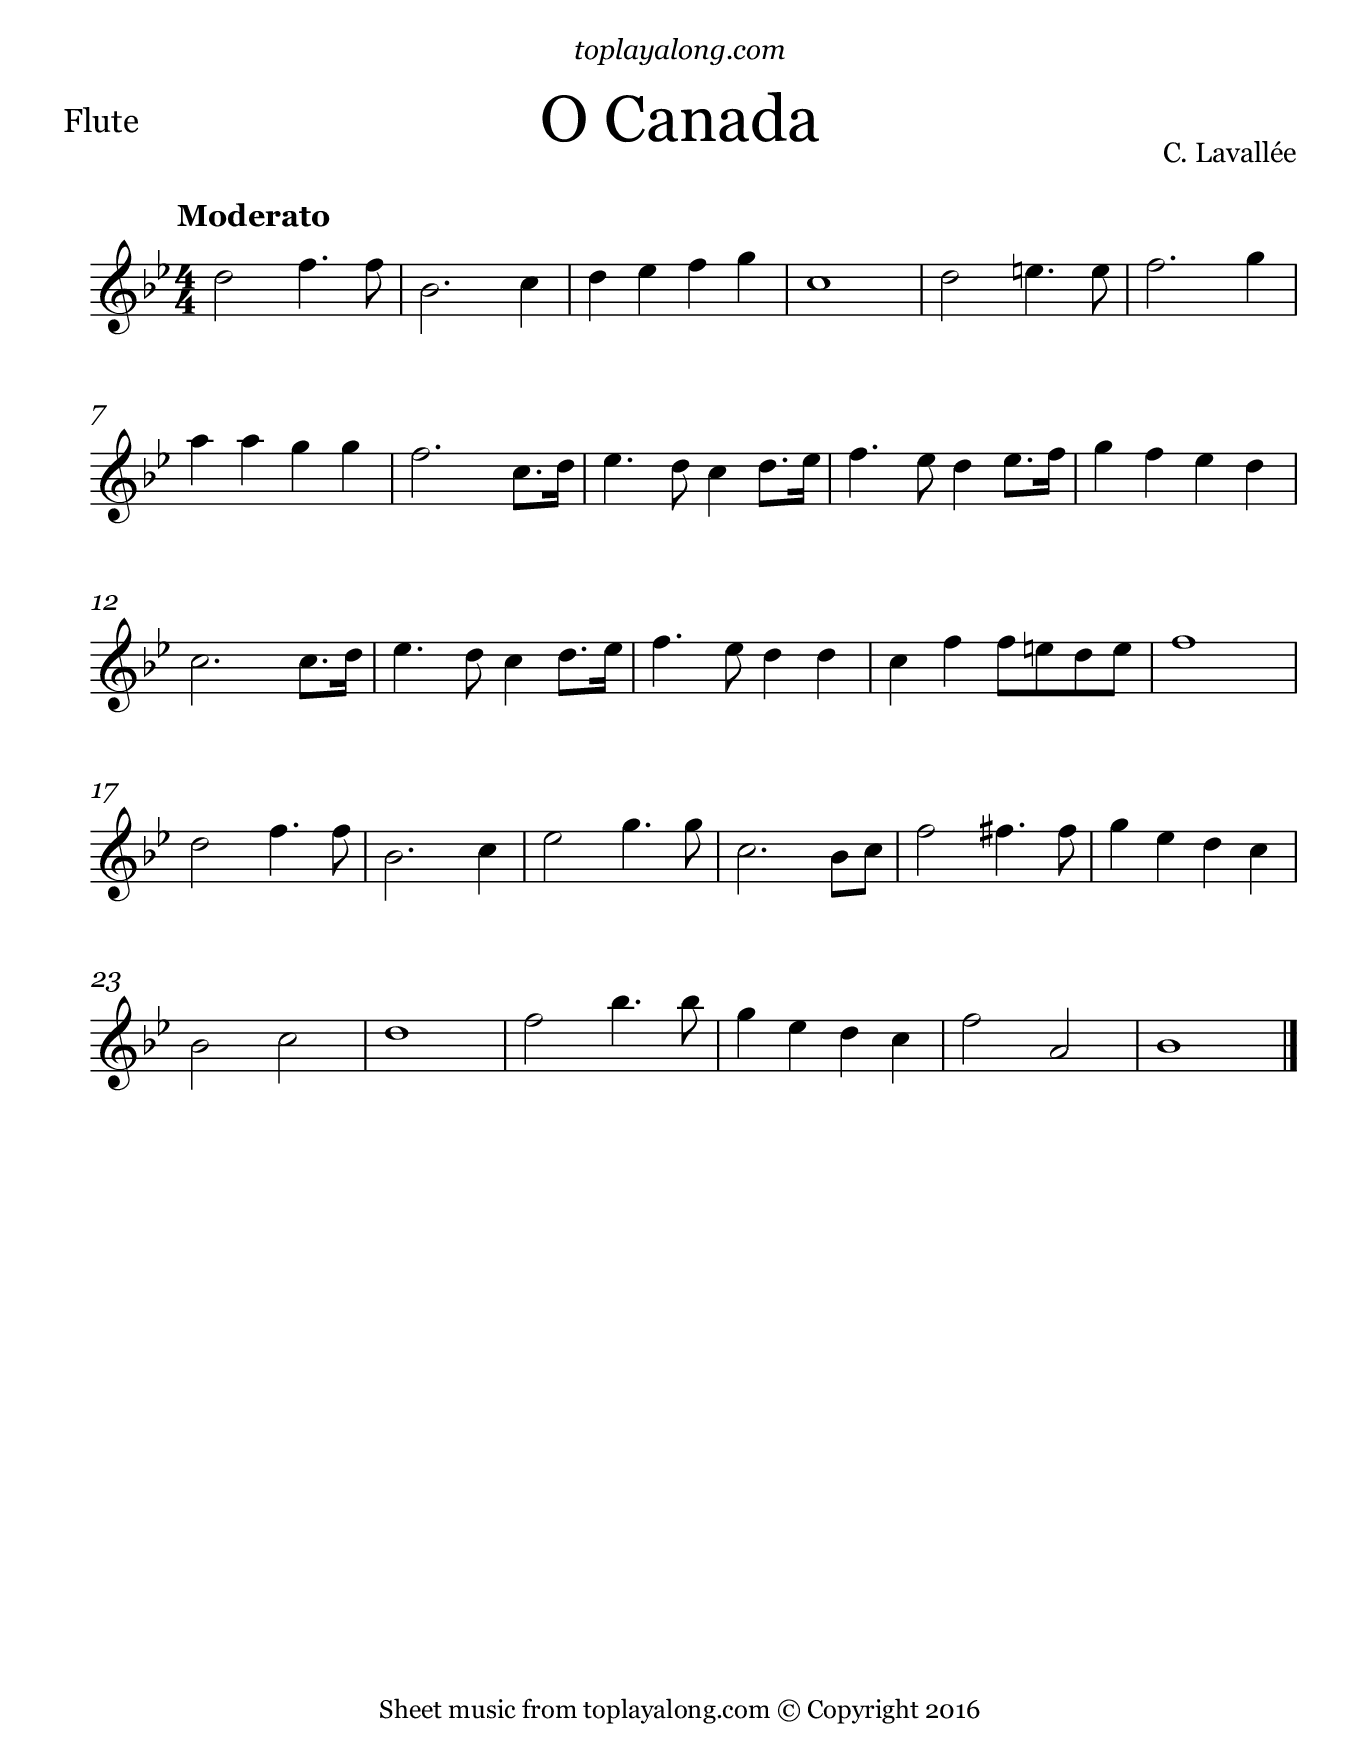 O Canada. Sheet music for Flute, page 1.